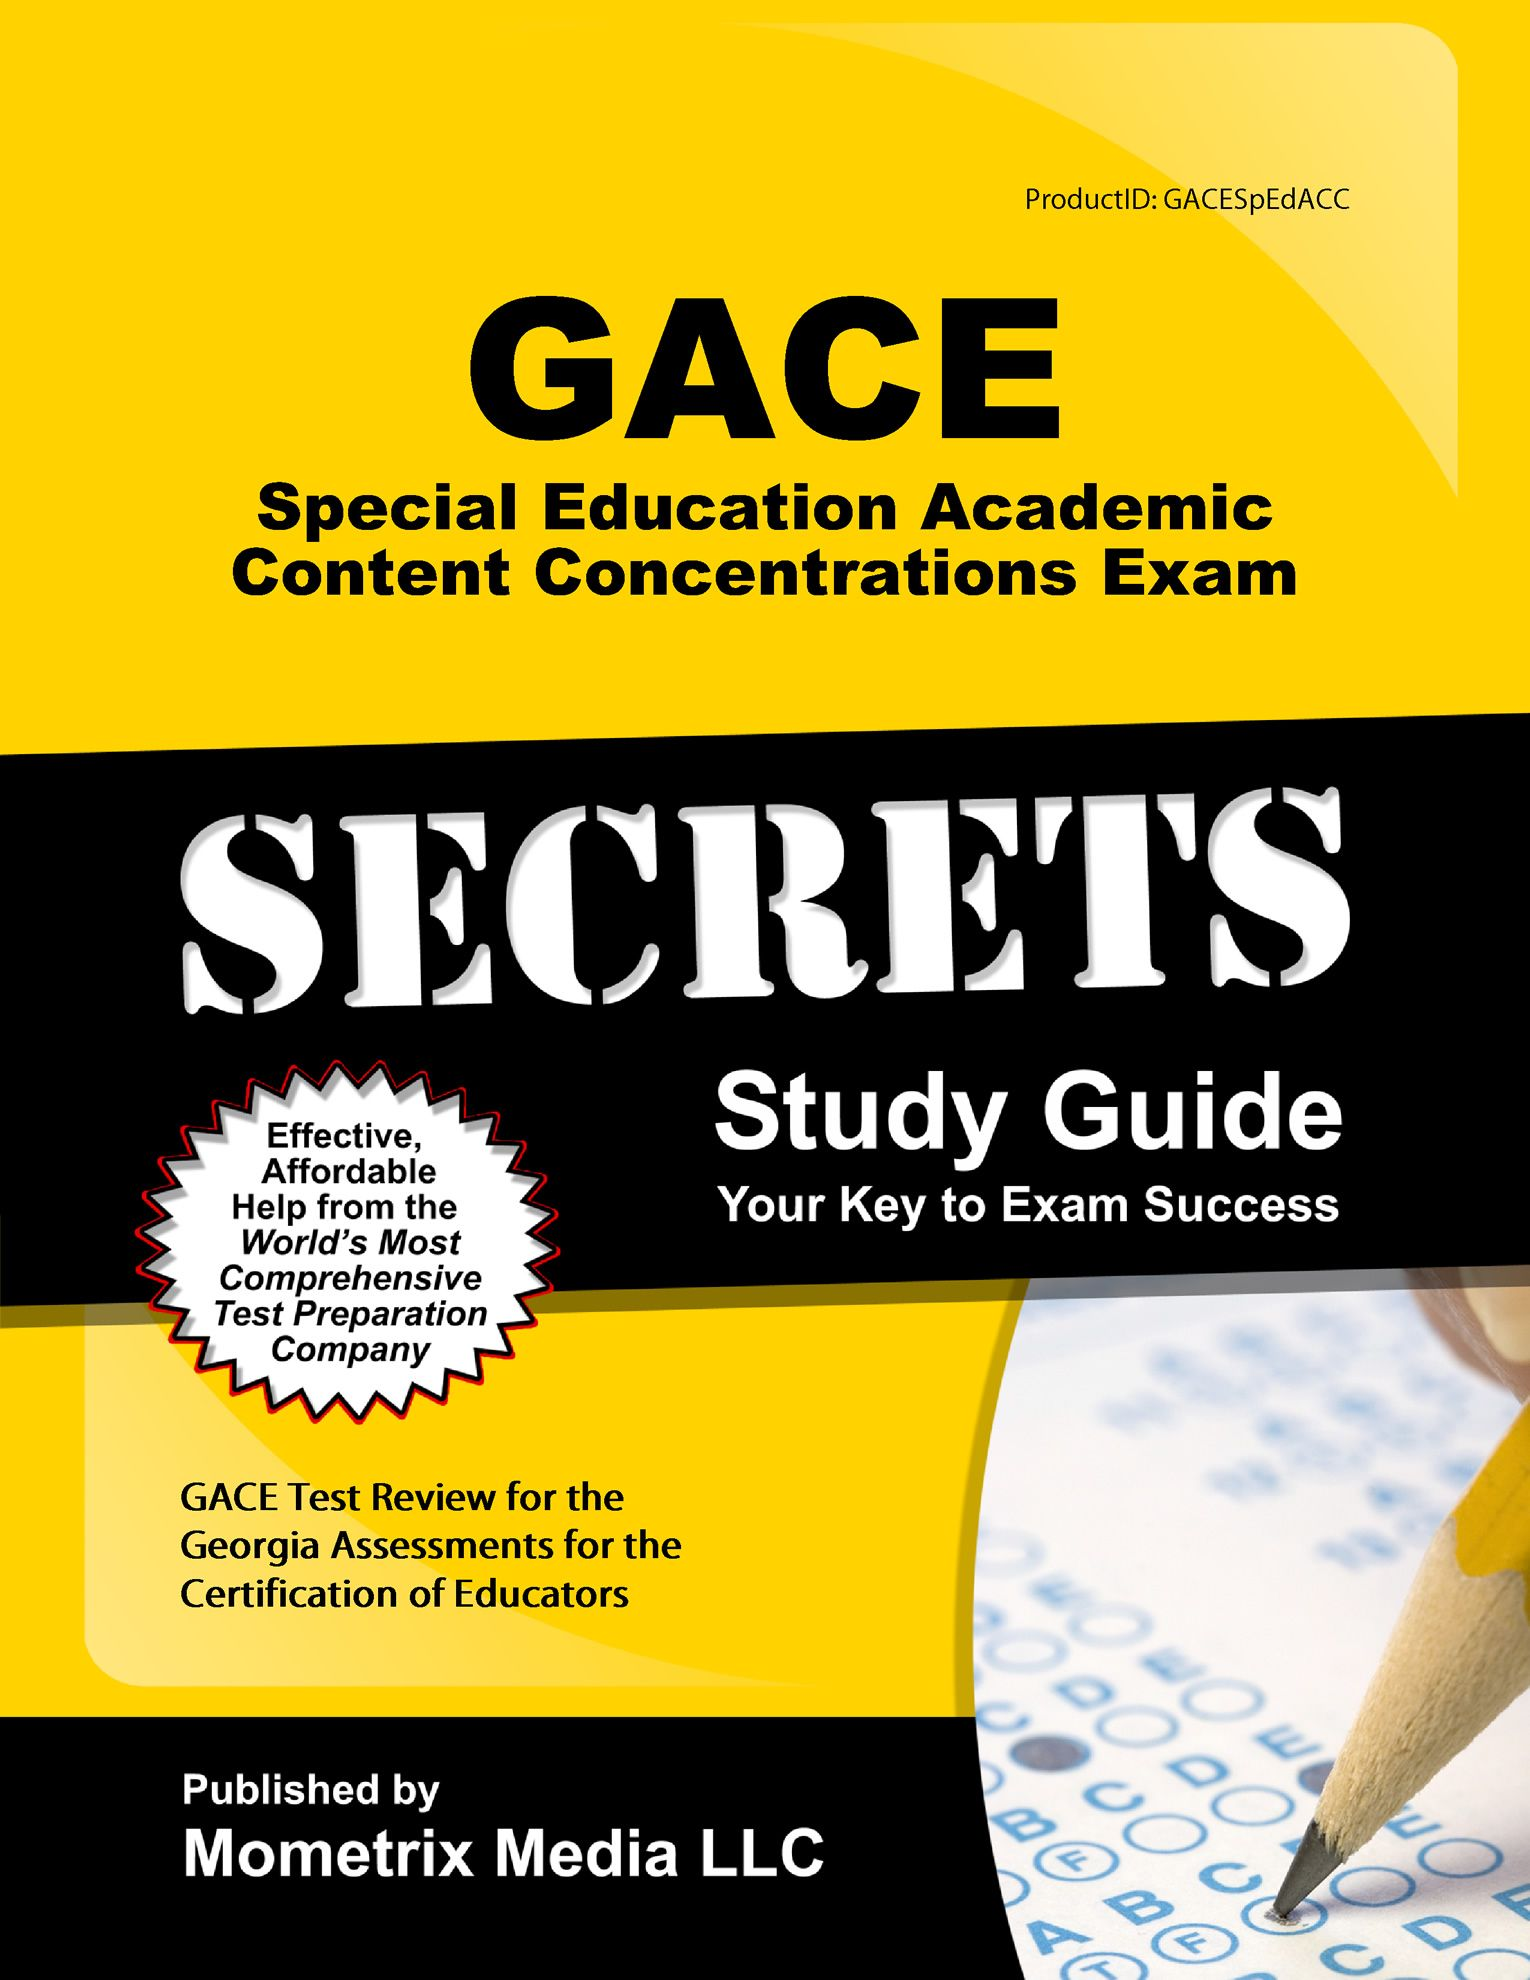 Gace Special Education Academic Content Concentrations Exam Study